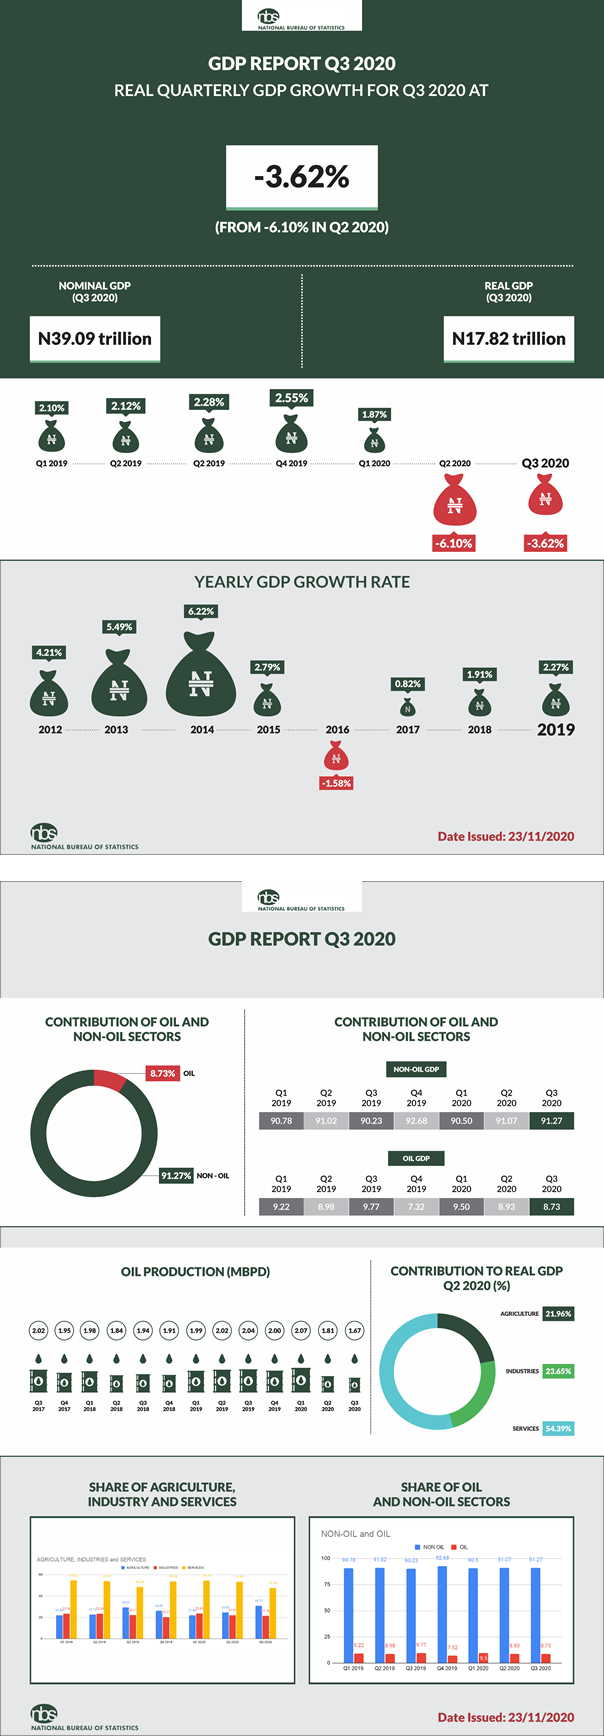 Nigeria's Real GDP Contracts by -3.62% in Q3 2020, Officially Slides into 2nd recession in 5 years Brandspurng2